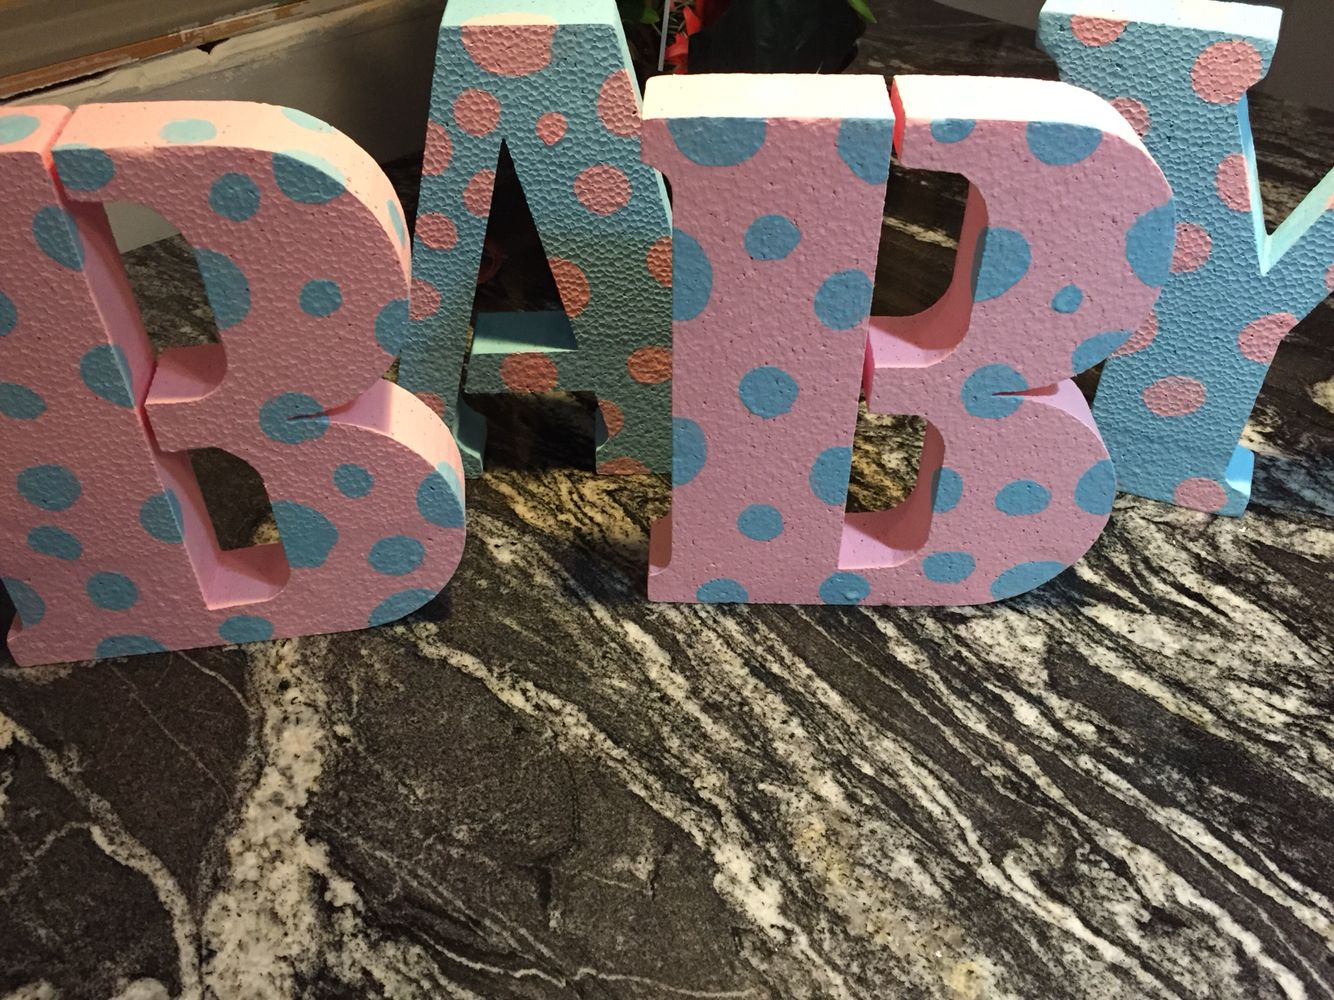 Diy Gender Reveal Decorations On A Tight Budget Gender Reveal Decorations Gender Reveal Party Theme Gender Reveal Party